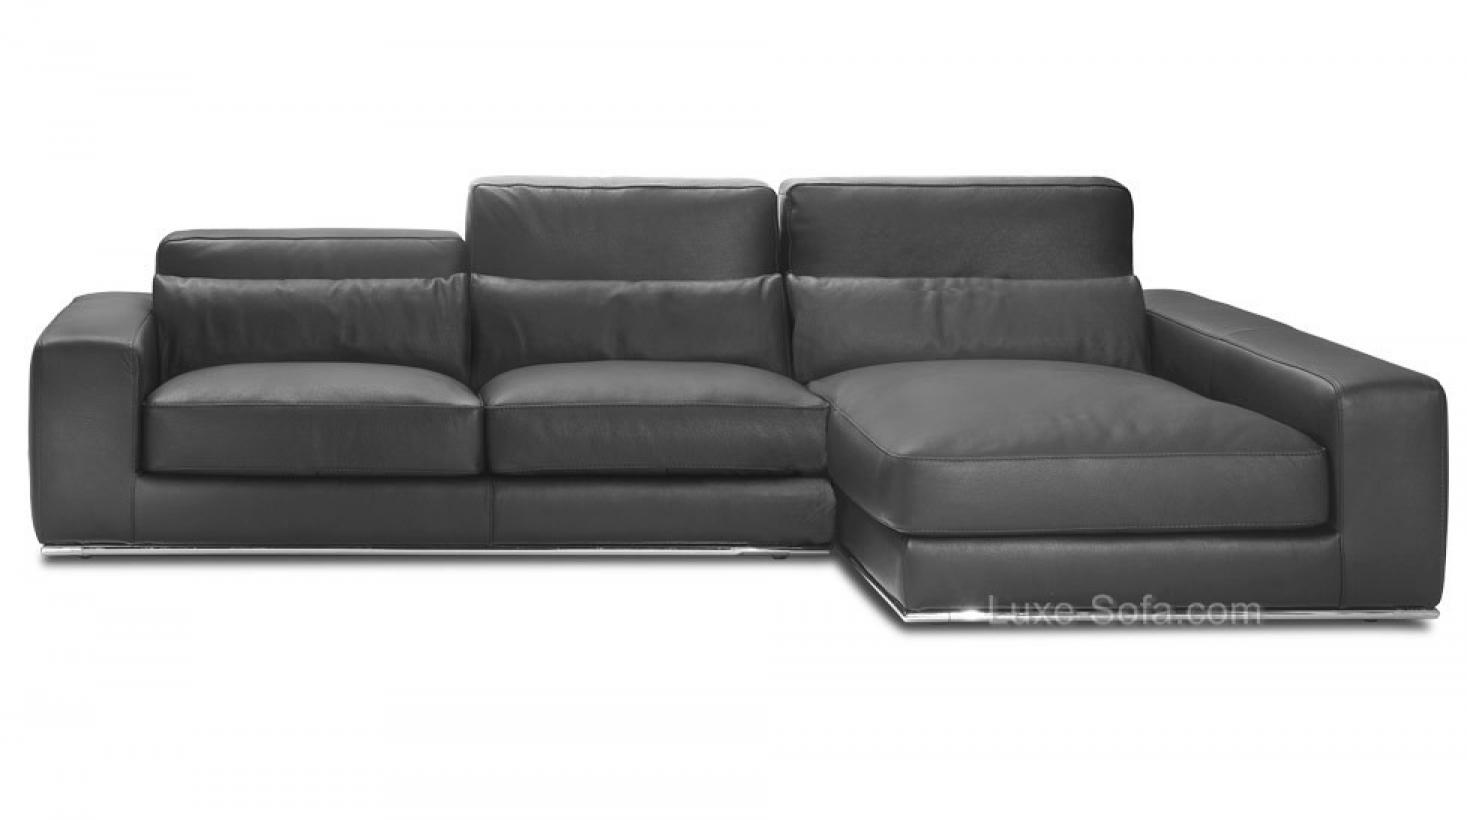 photos canap d 39 angle cuir gris anthracite. Black Bedroom Furniture Sets. Home Design Ideas